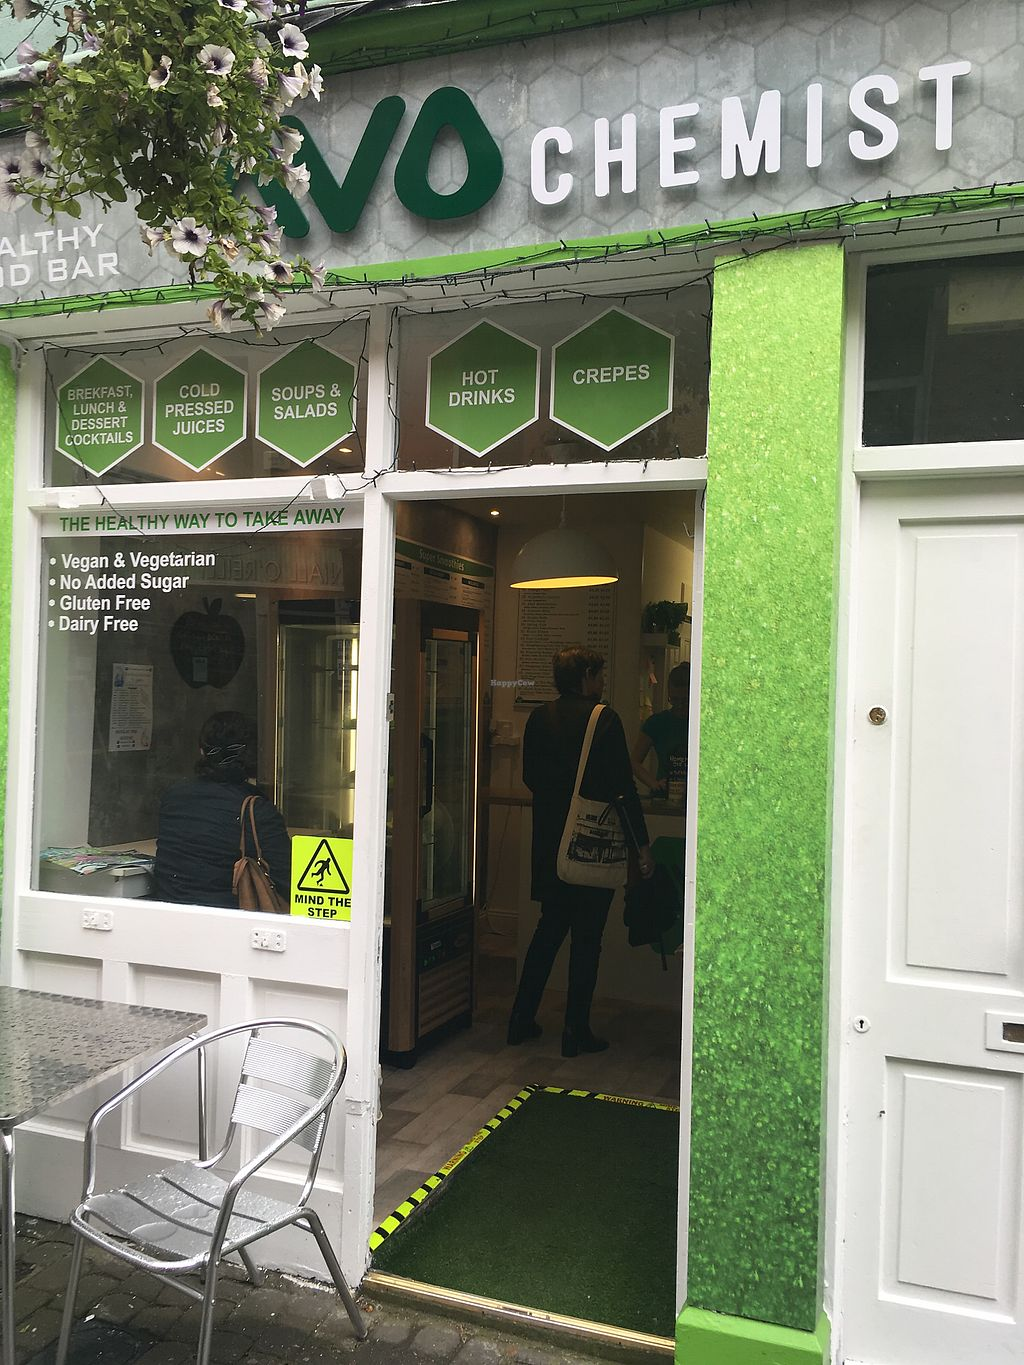 """Photo of CLOSED: Avochemist  by <a href=""""/members/profile/NicP"""">NicP</a> <br/>Shop Front <br/> August 22, 2017  - <a href='/contact/abuse/image/95194/295777'>Report</a>"""